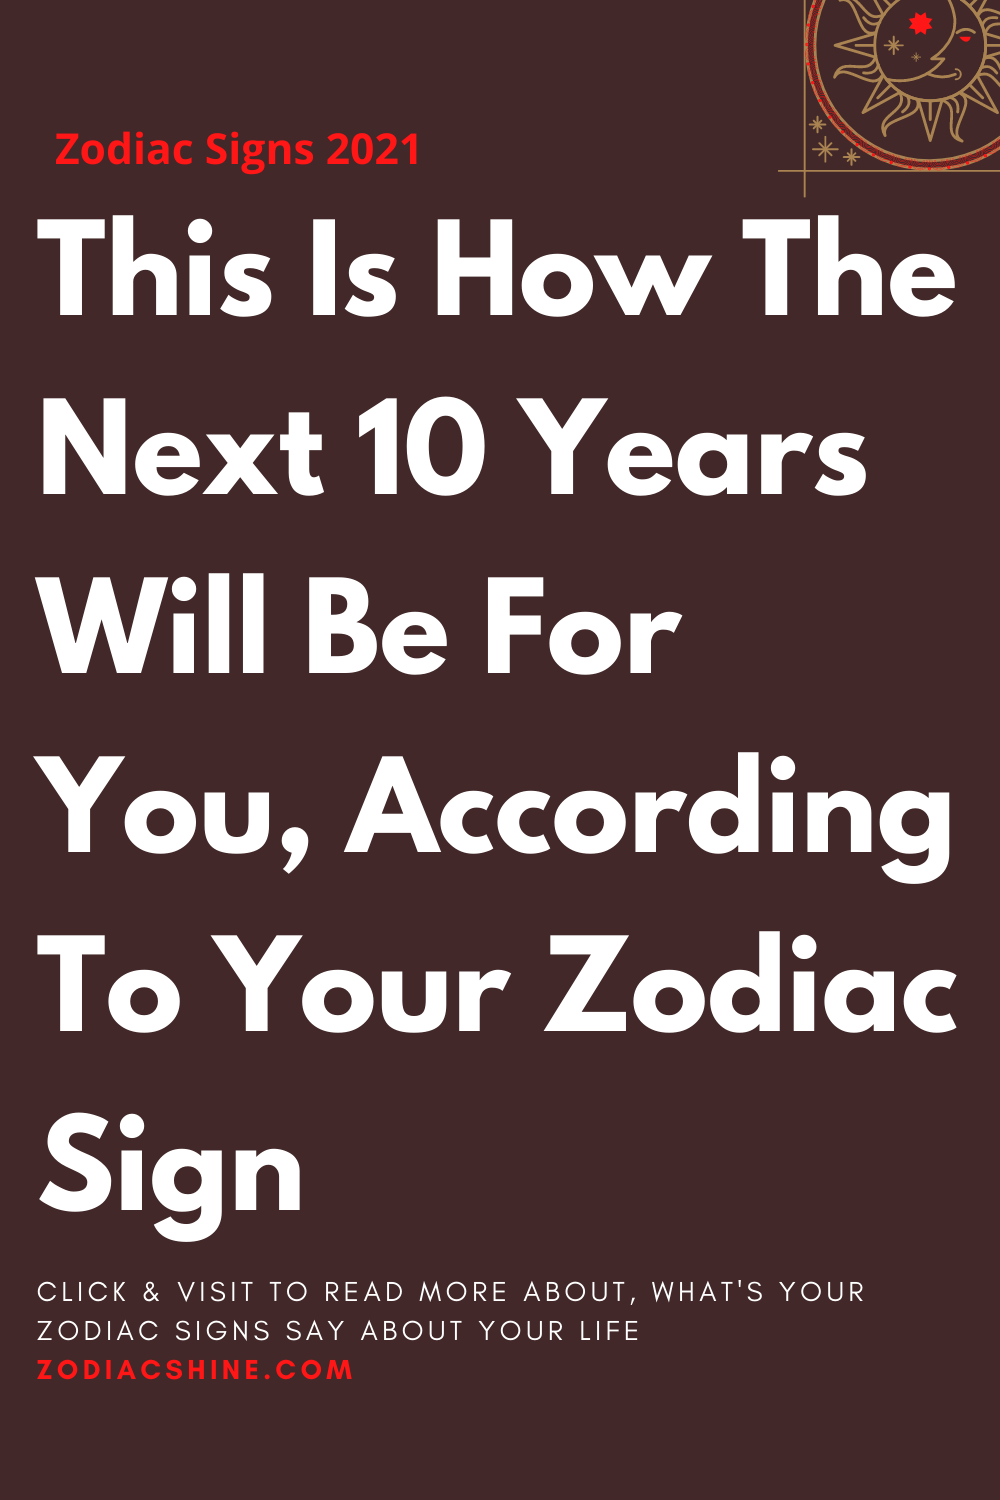 This Is How The Next 10 Years Will Be For You According To Your Zodiac Sign